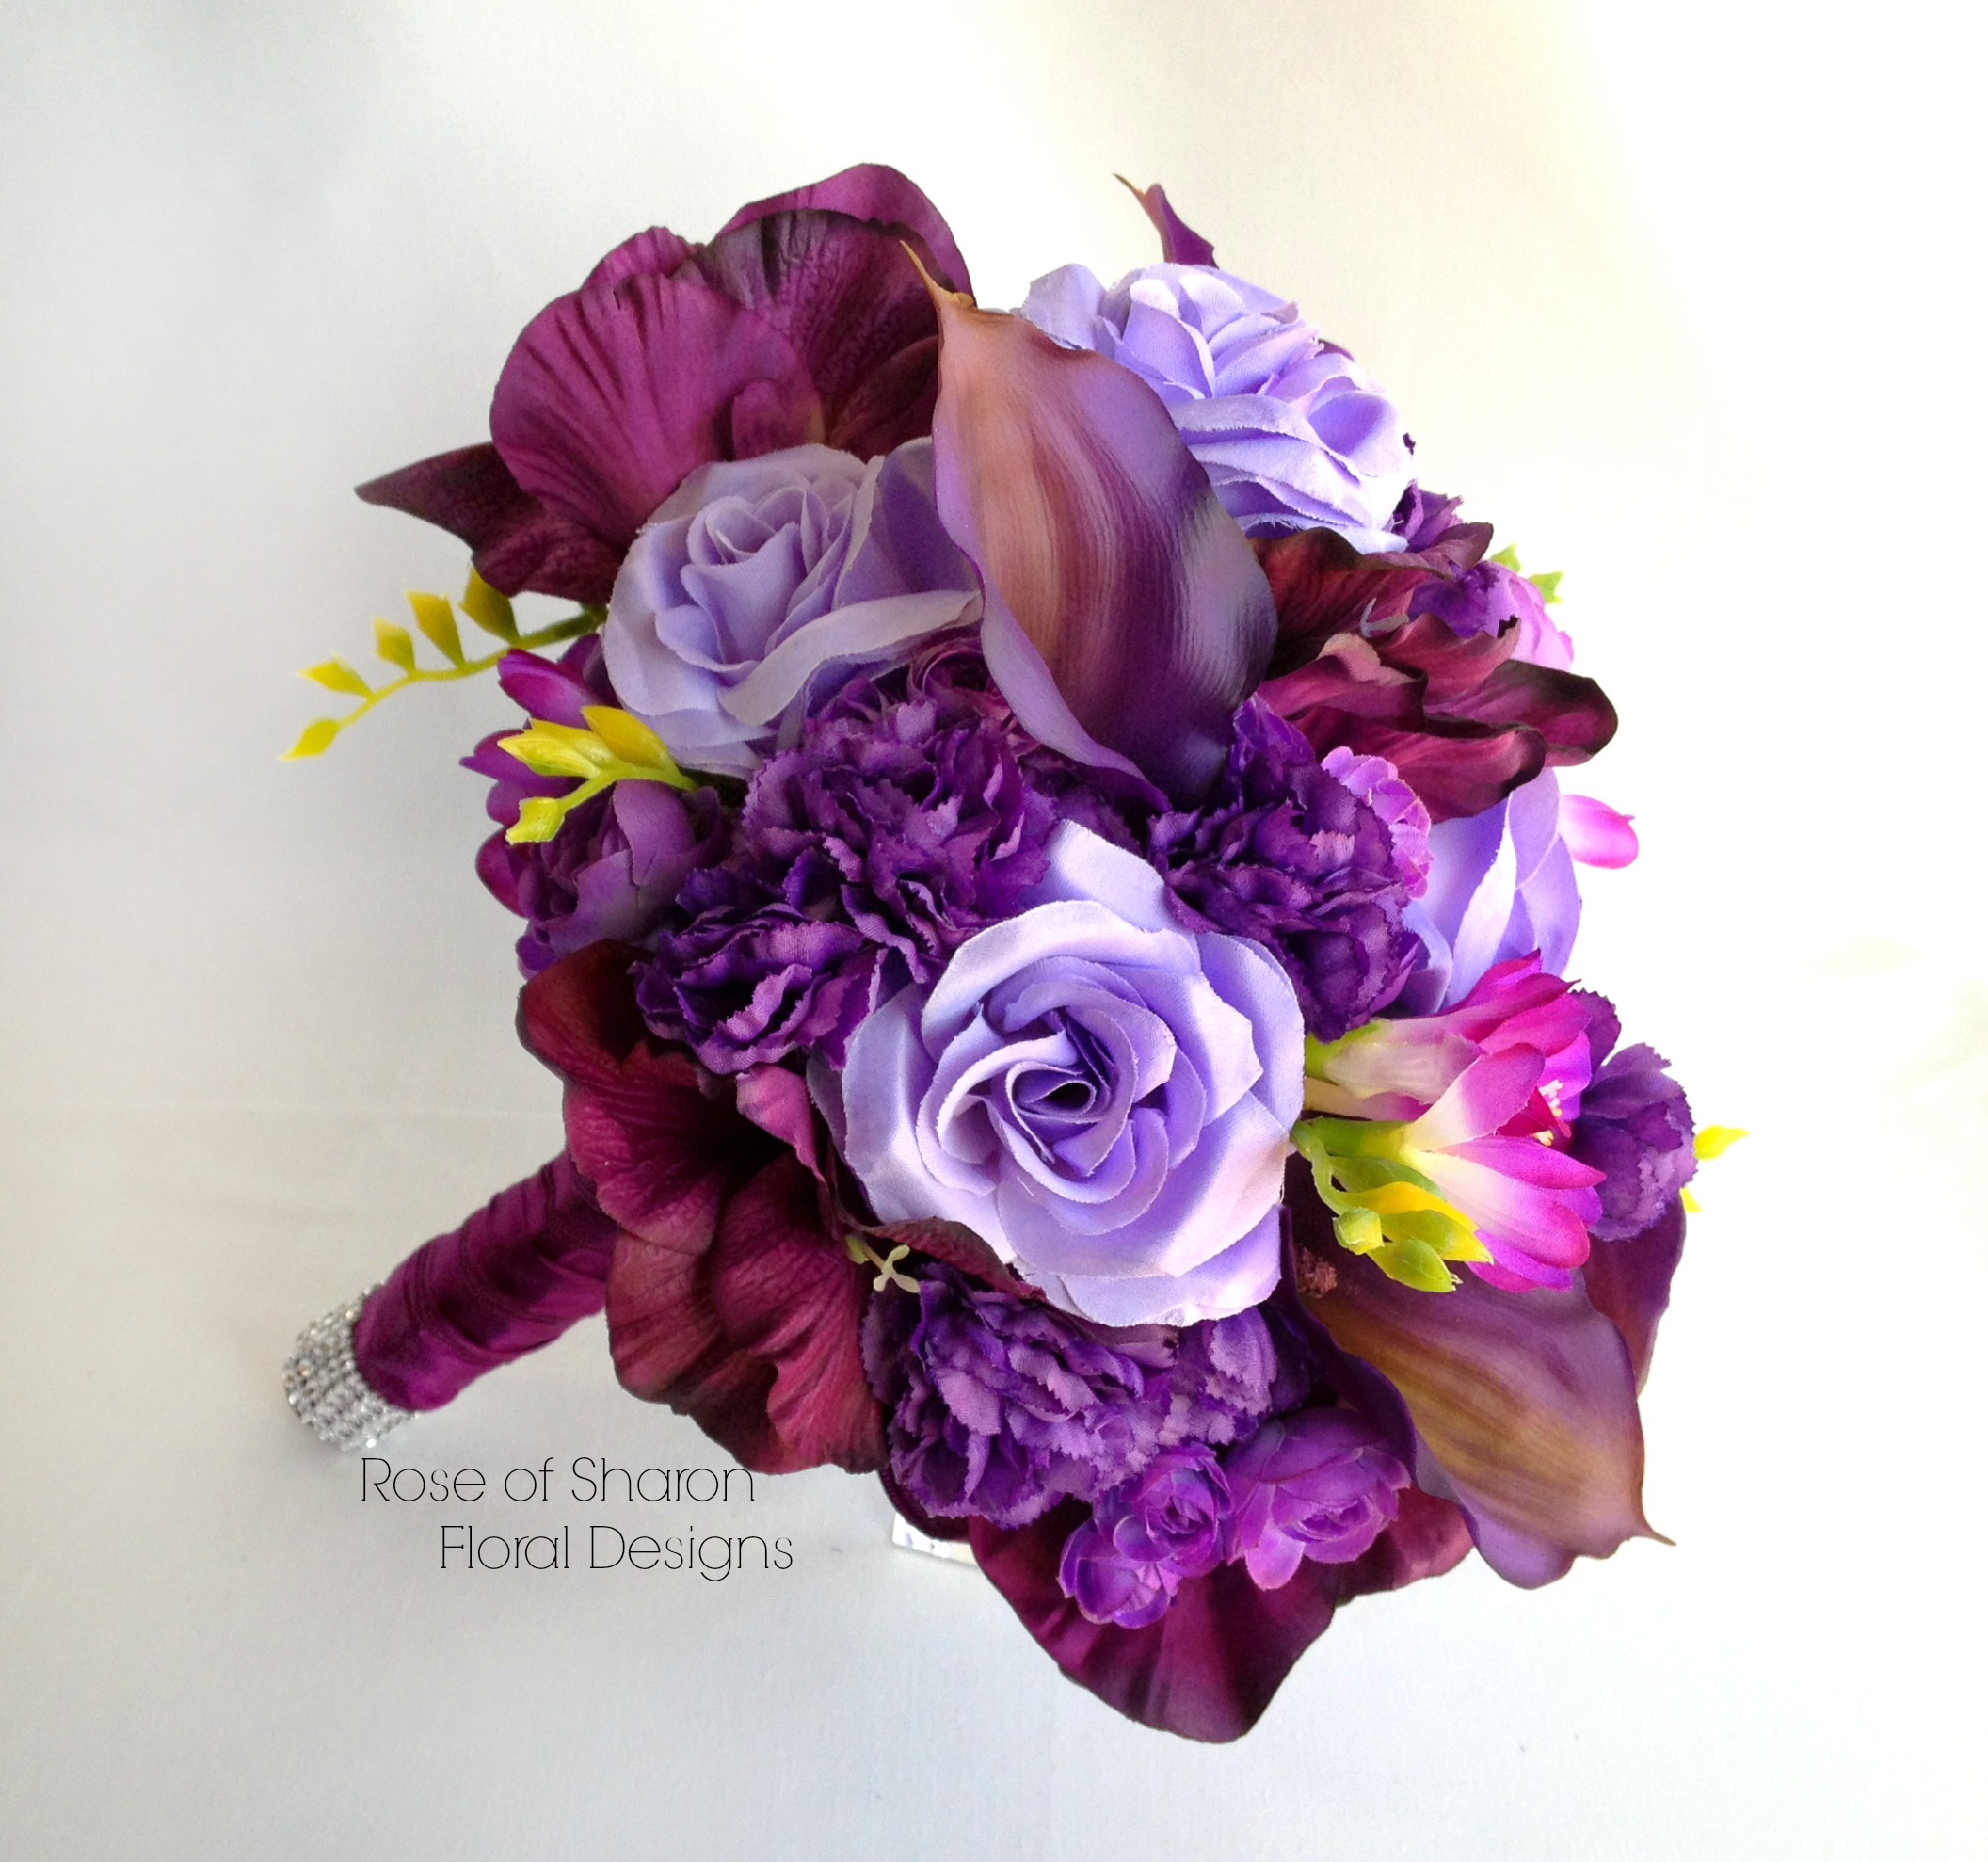 Mixed Purple Bouquet featuring Calla Lilies, Roses and Carnations, Rose of Sharon Floral Designs